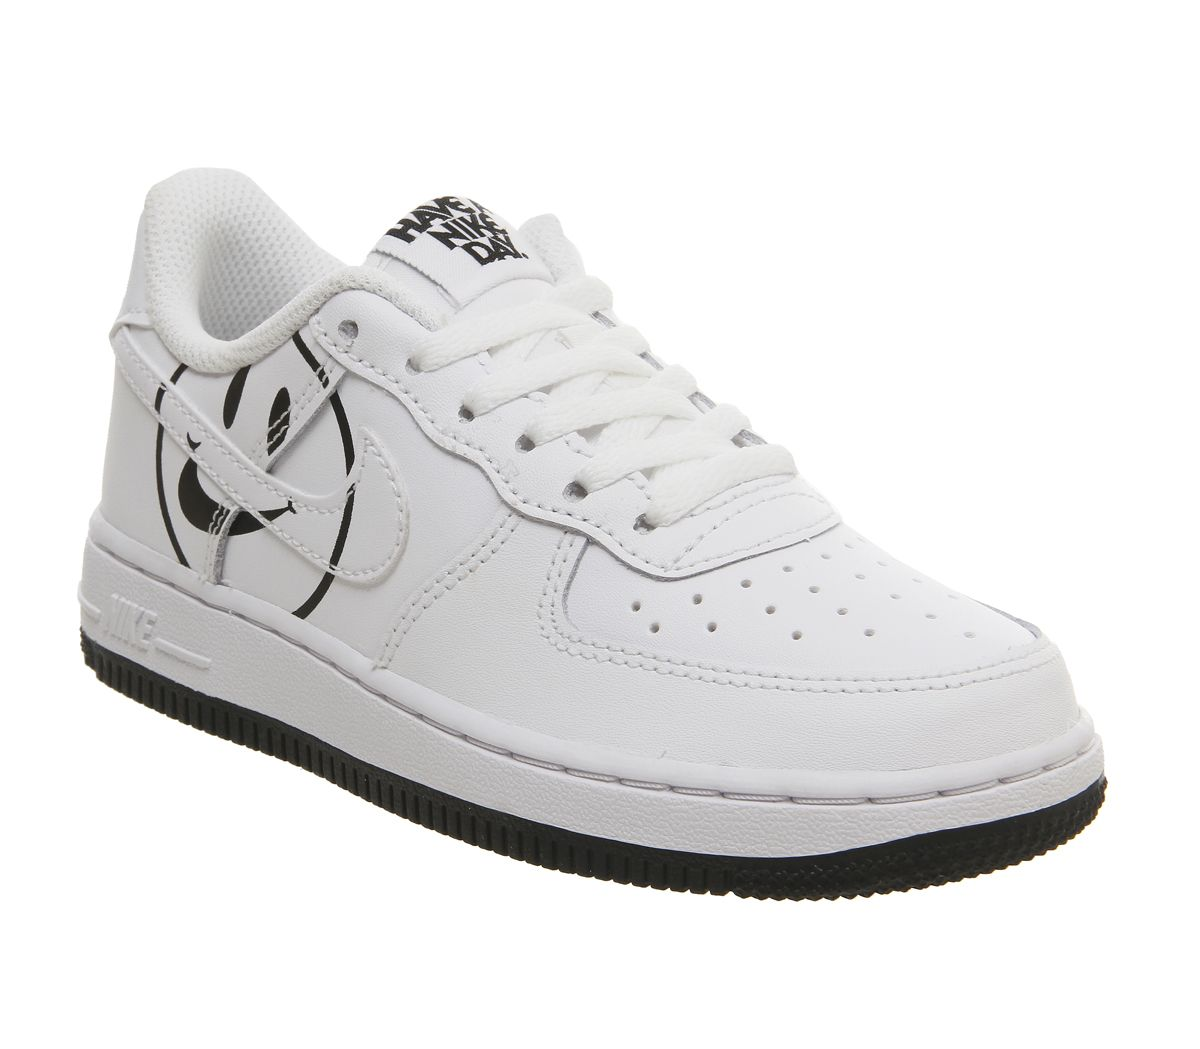 buy popular 837cc eaf87 Nike Air Force 1 Lv8 Ps Trainers White Black Smile - Kids Trainers